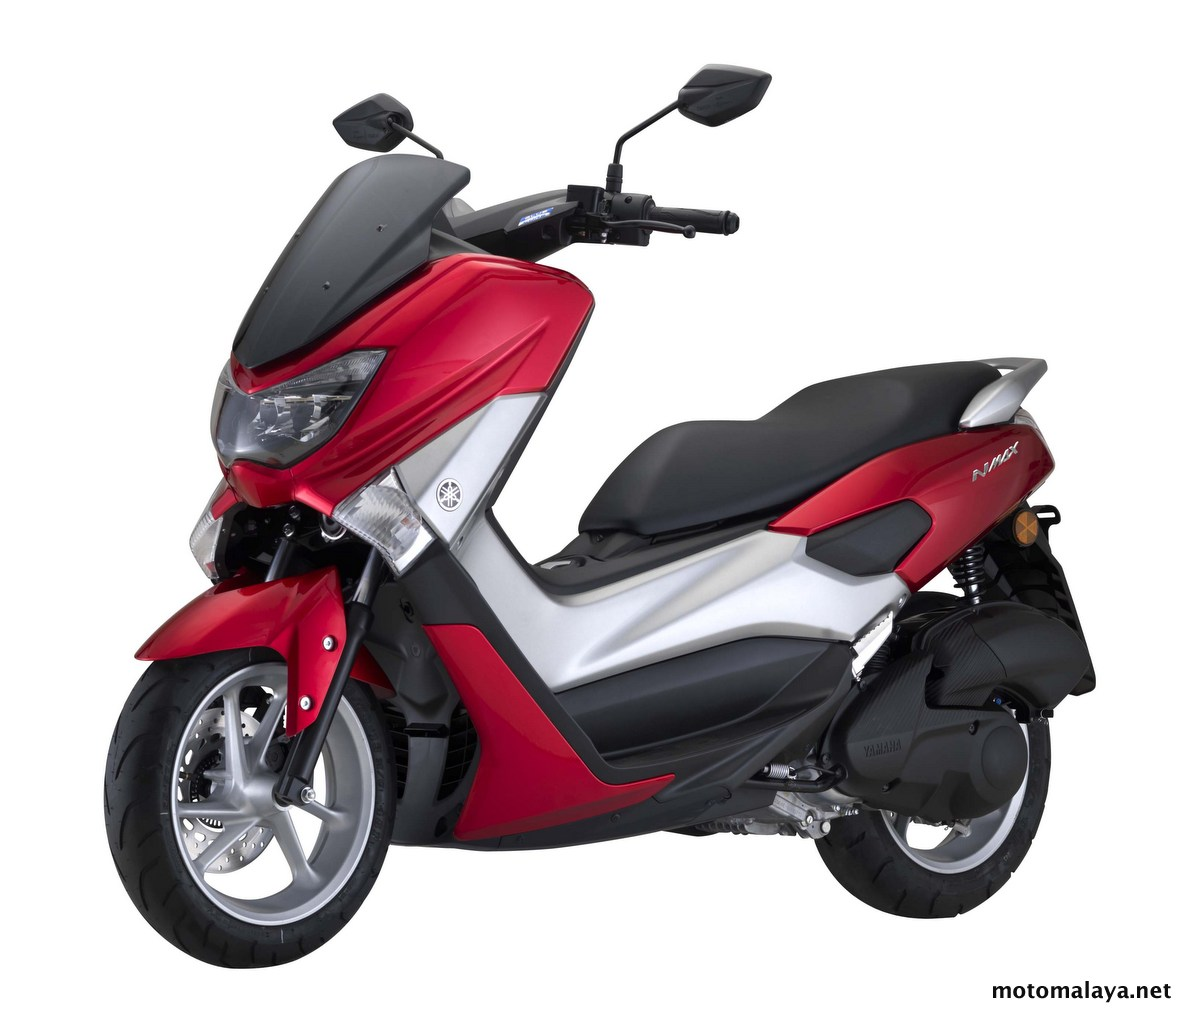 Yamaha Scooter For Sale Malaysia